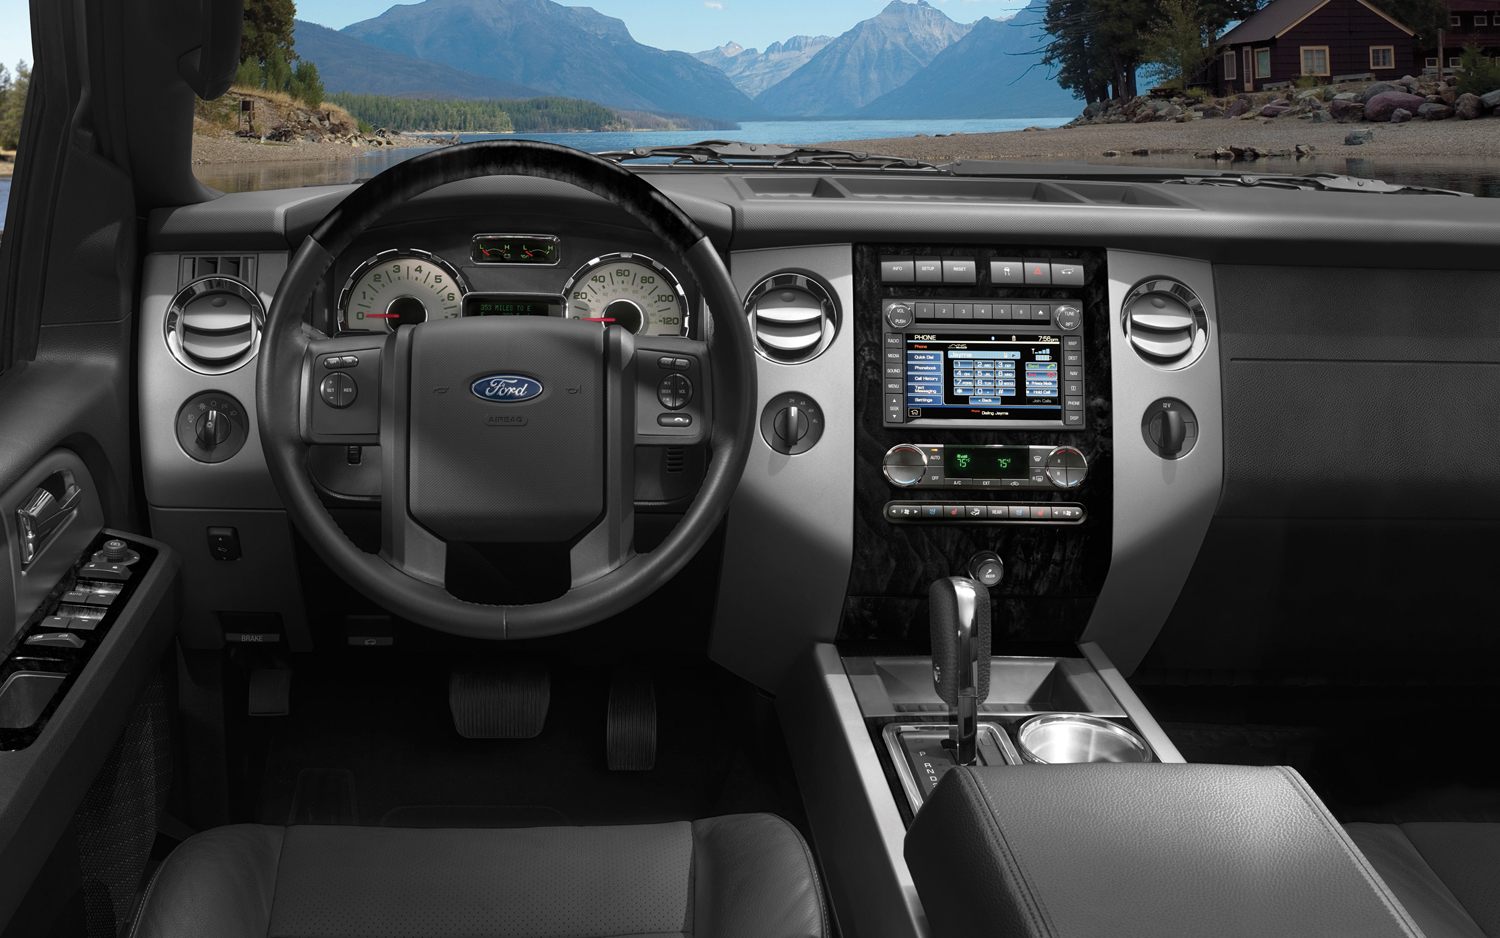 Ford Expedition 2012 Interior 2012 Ford Expedition 12 Ford